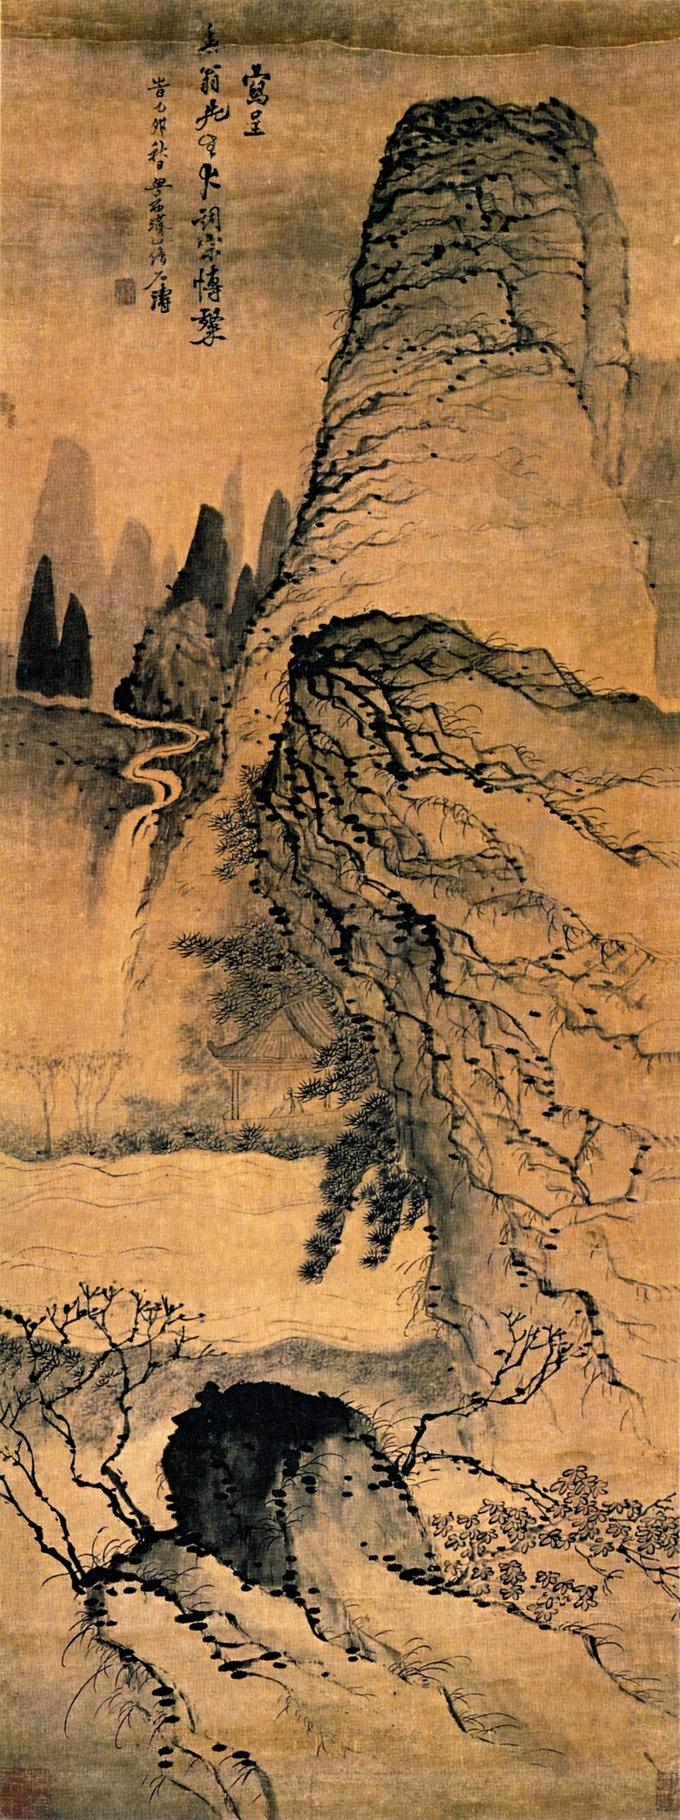 Painting depicts a tall, craggy peak overlooking a pavilion alongside a river. More peaks and a waterfall are in the background.